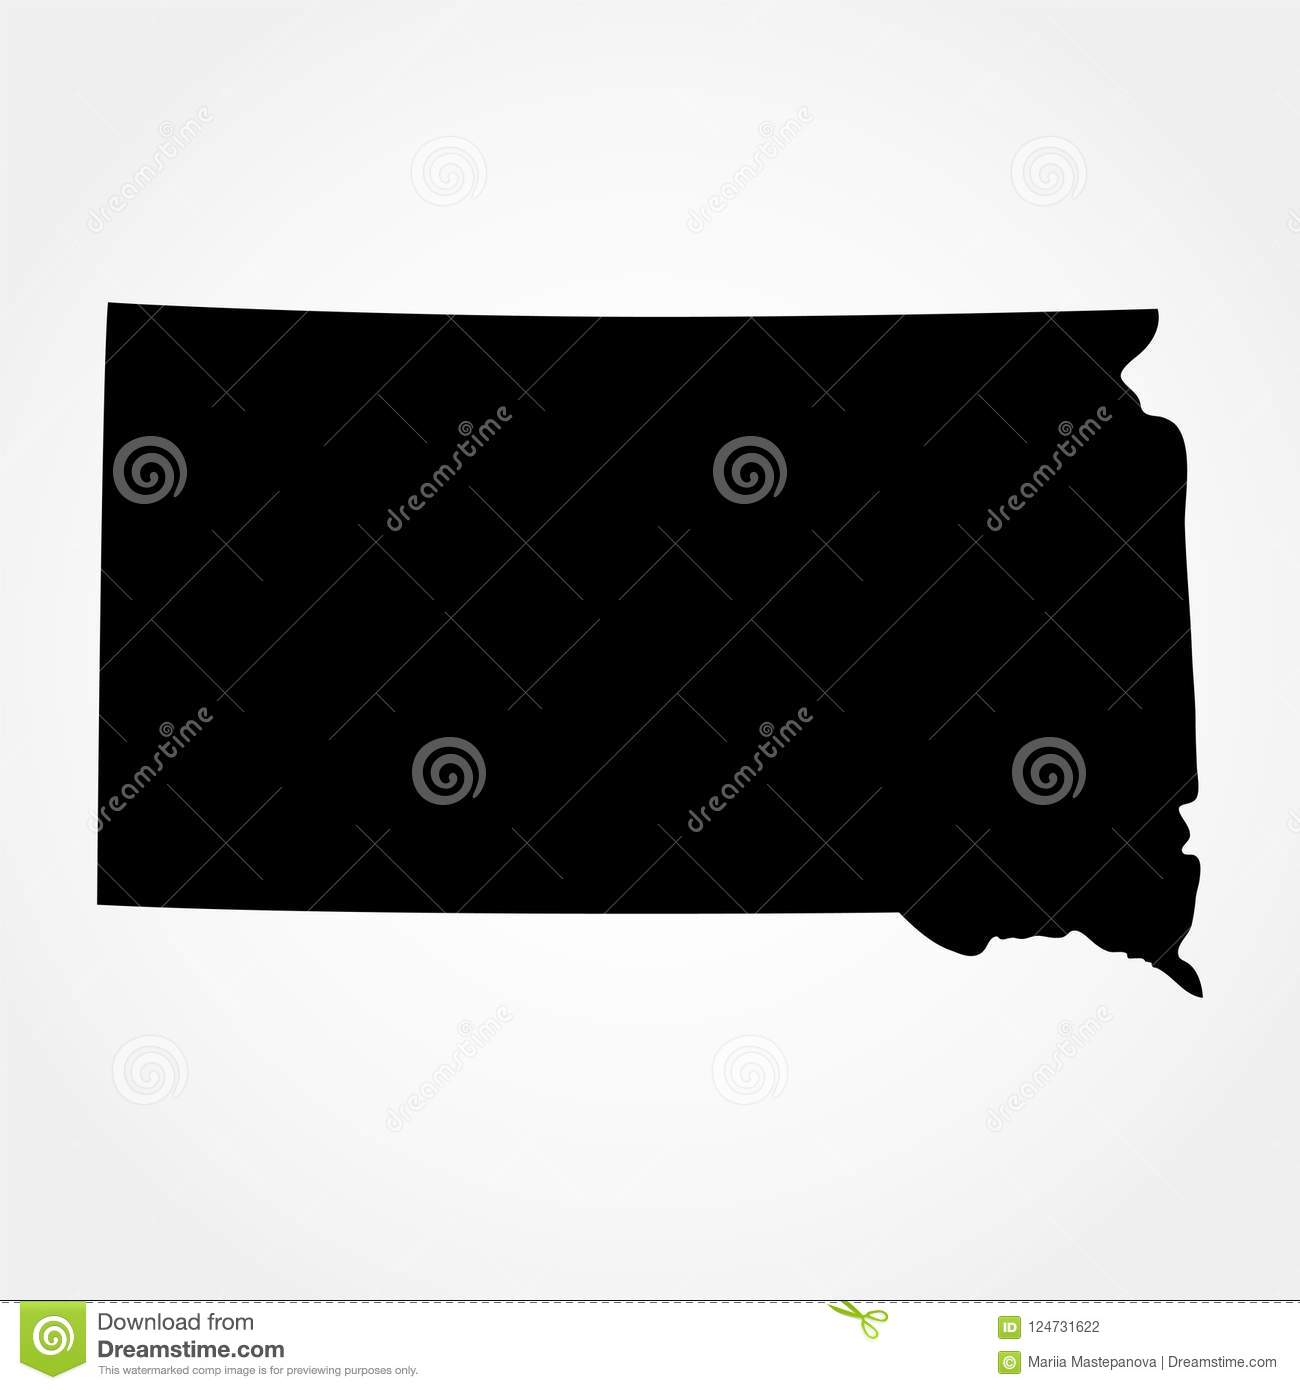 Map Of The U S State Of South Dakota Stock Vector Illustration Of